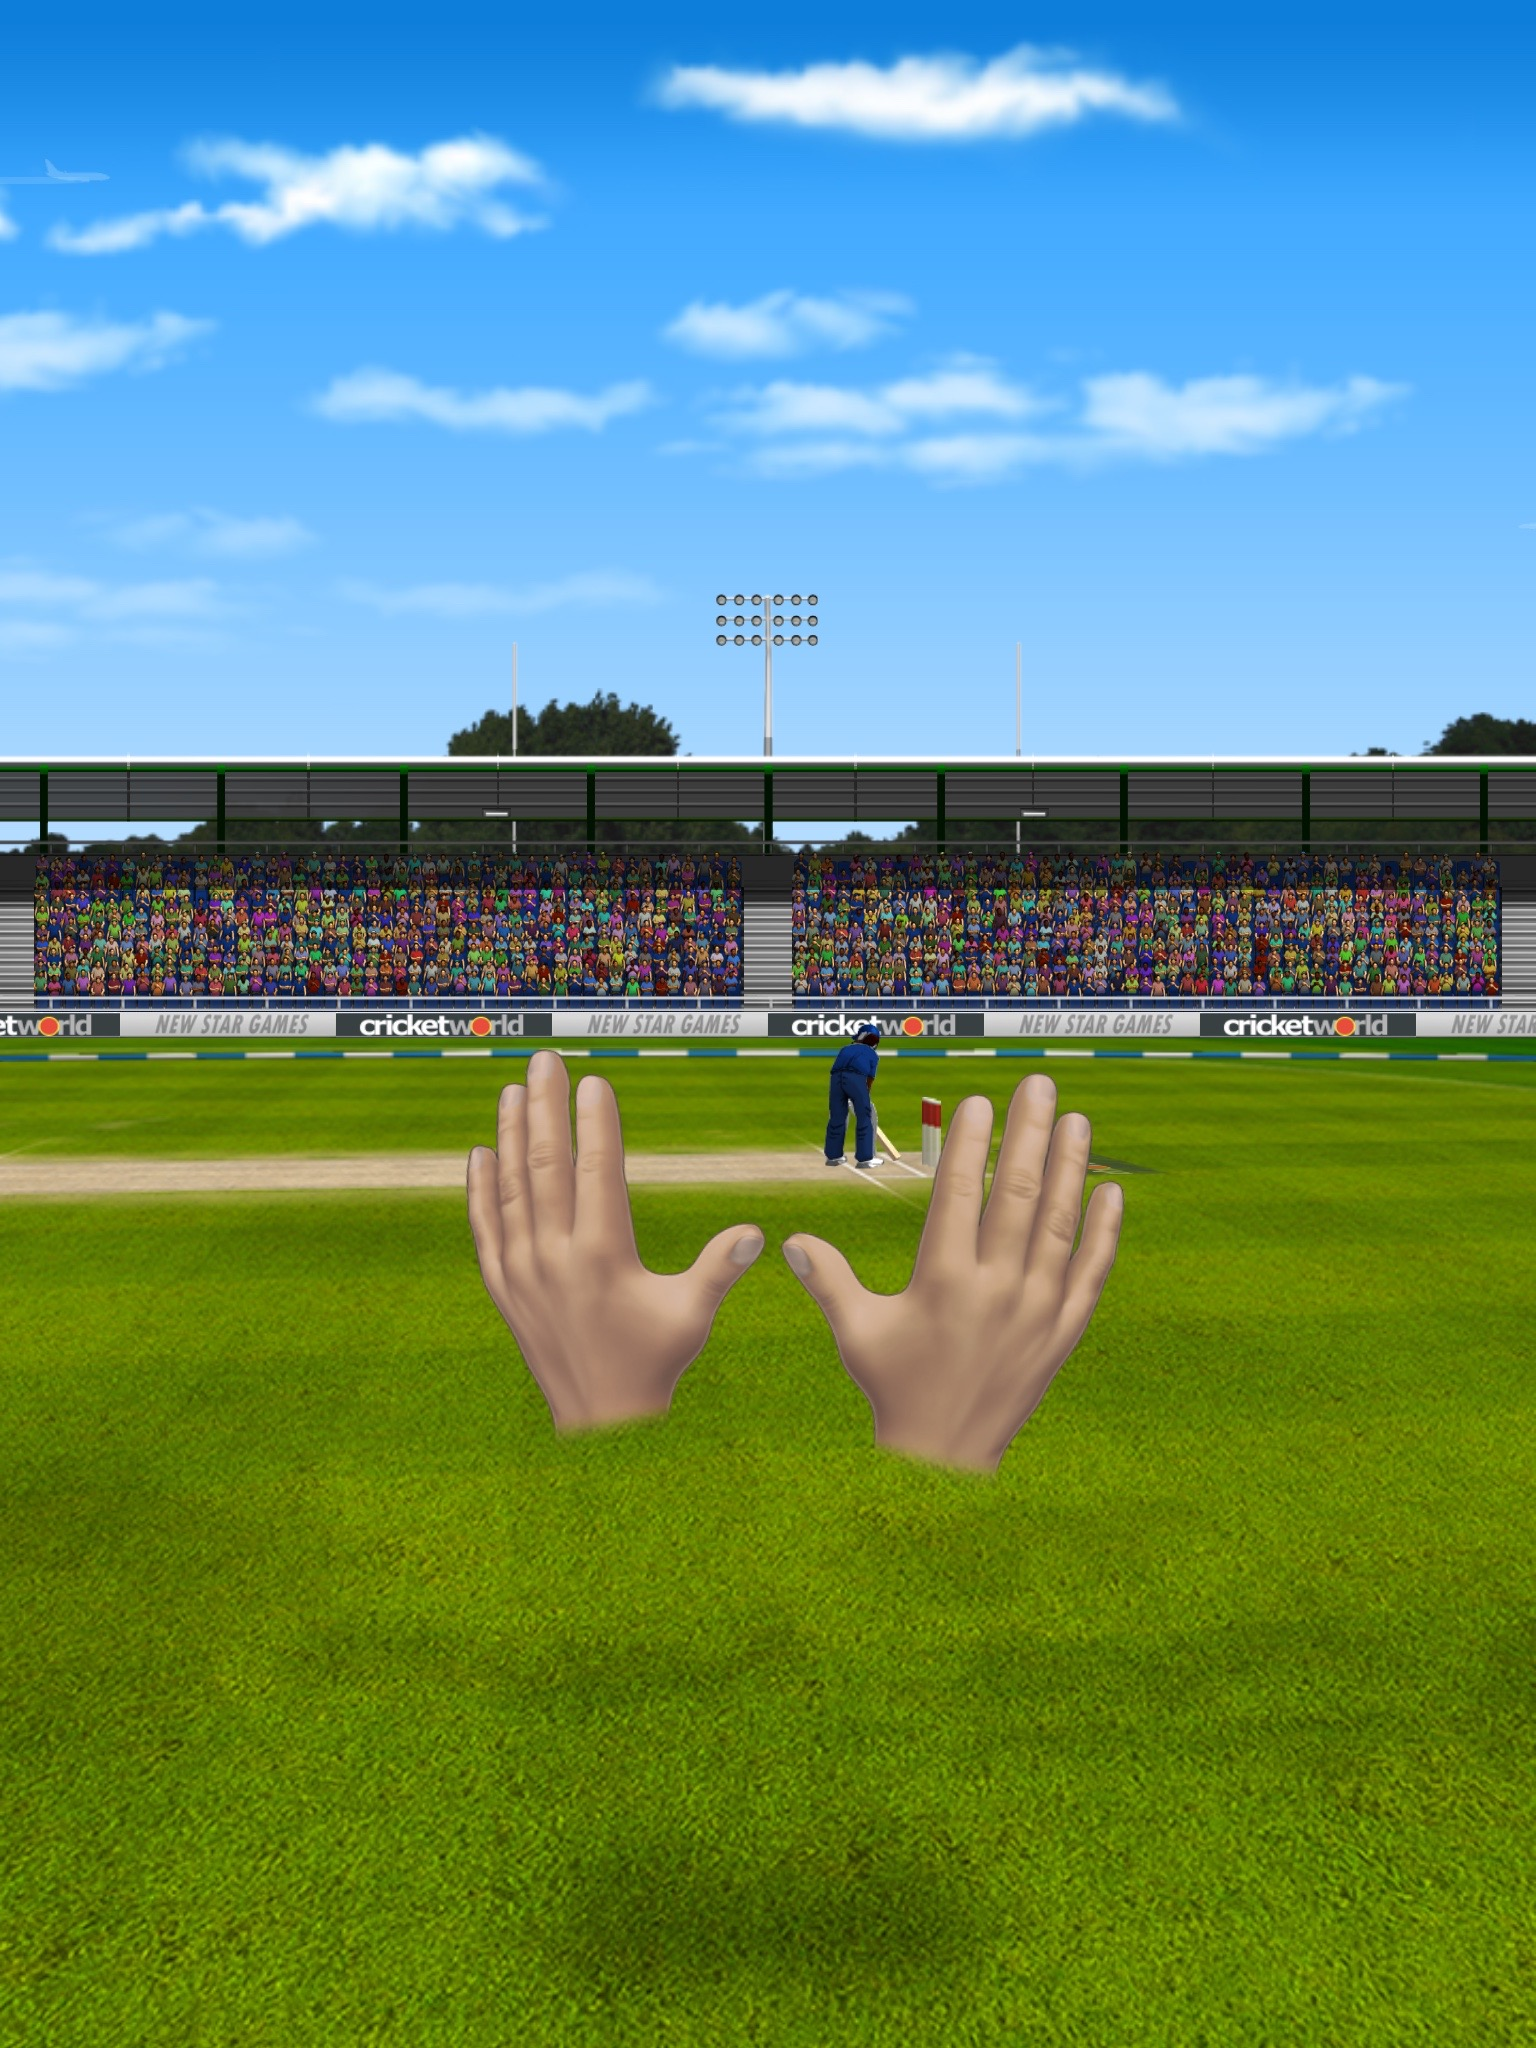 New Star Cricket review - Another sport gets the Star treatment